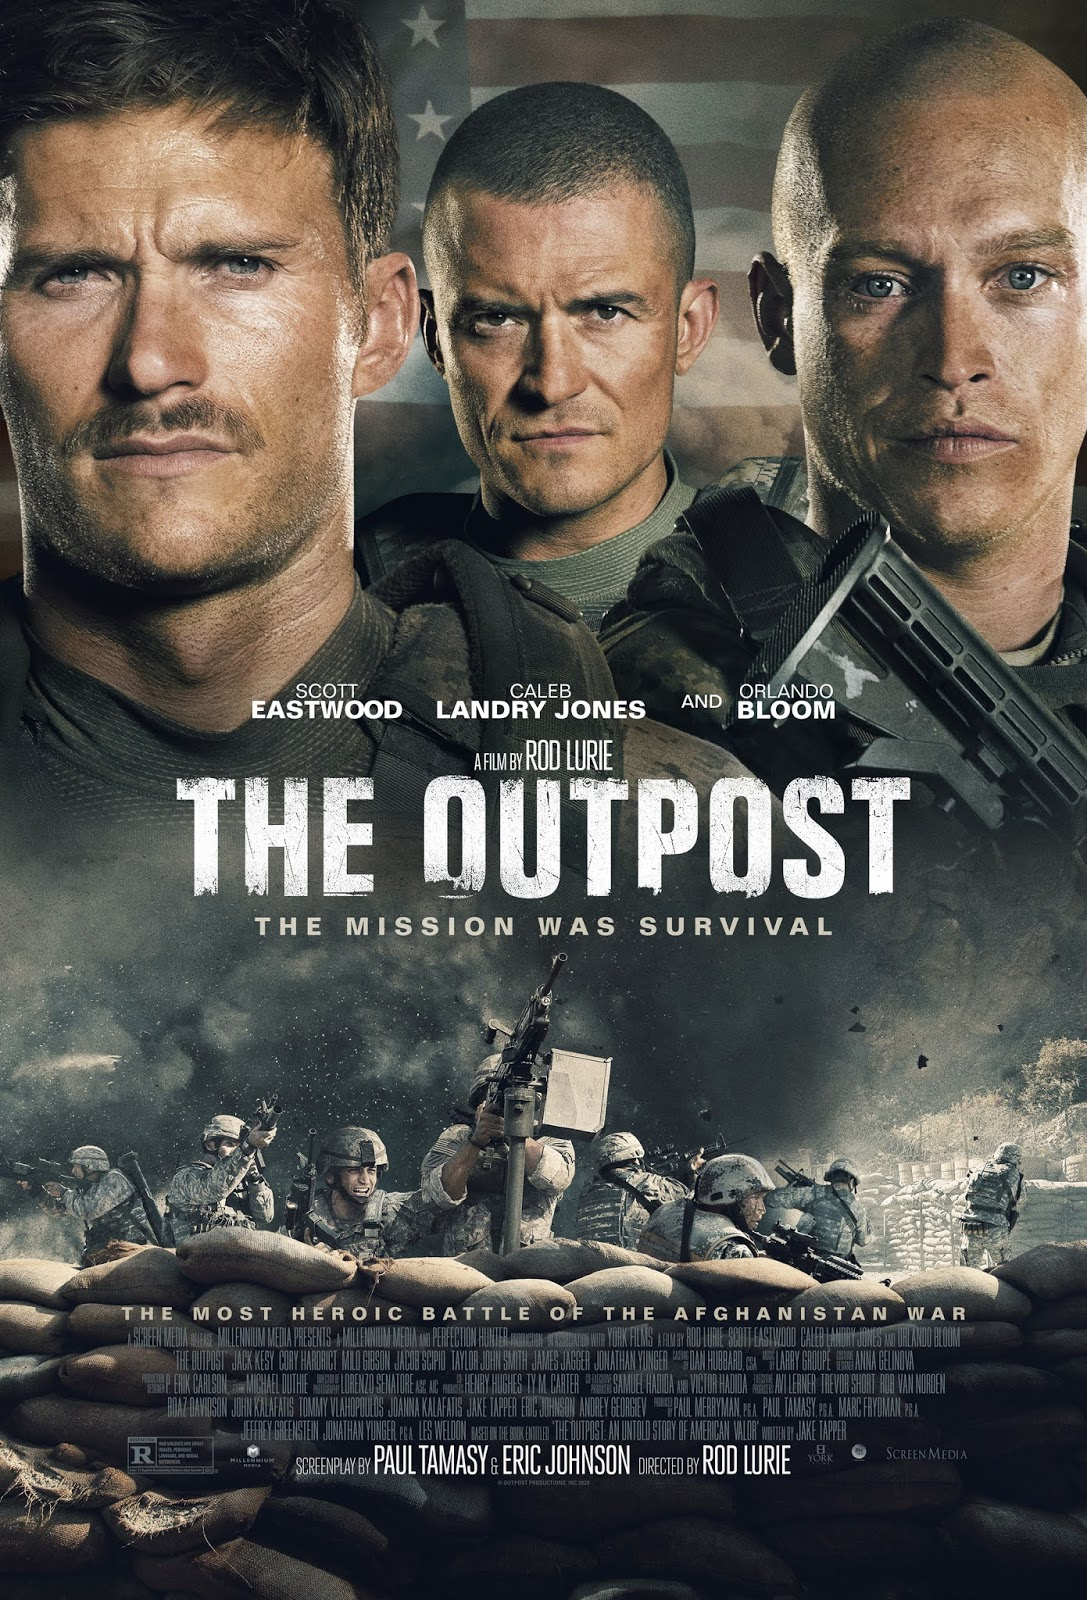 outpost film wojenny afganistan recenzja scott eastwood orlando bloom